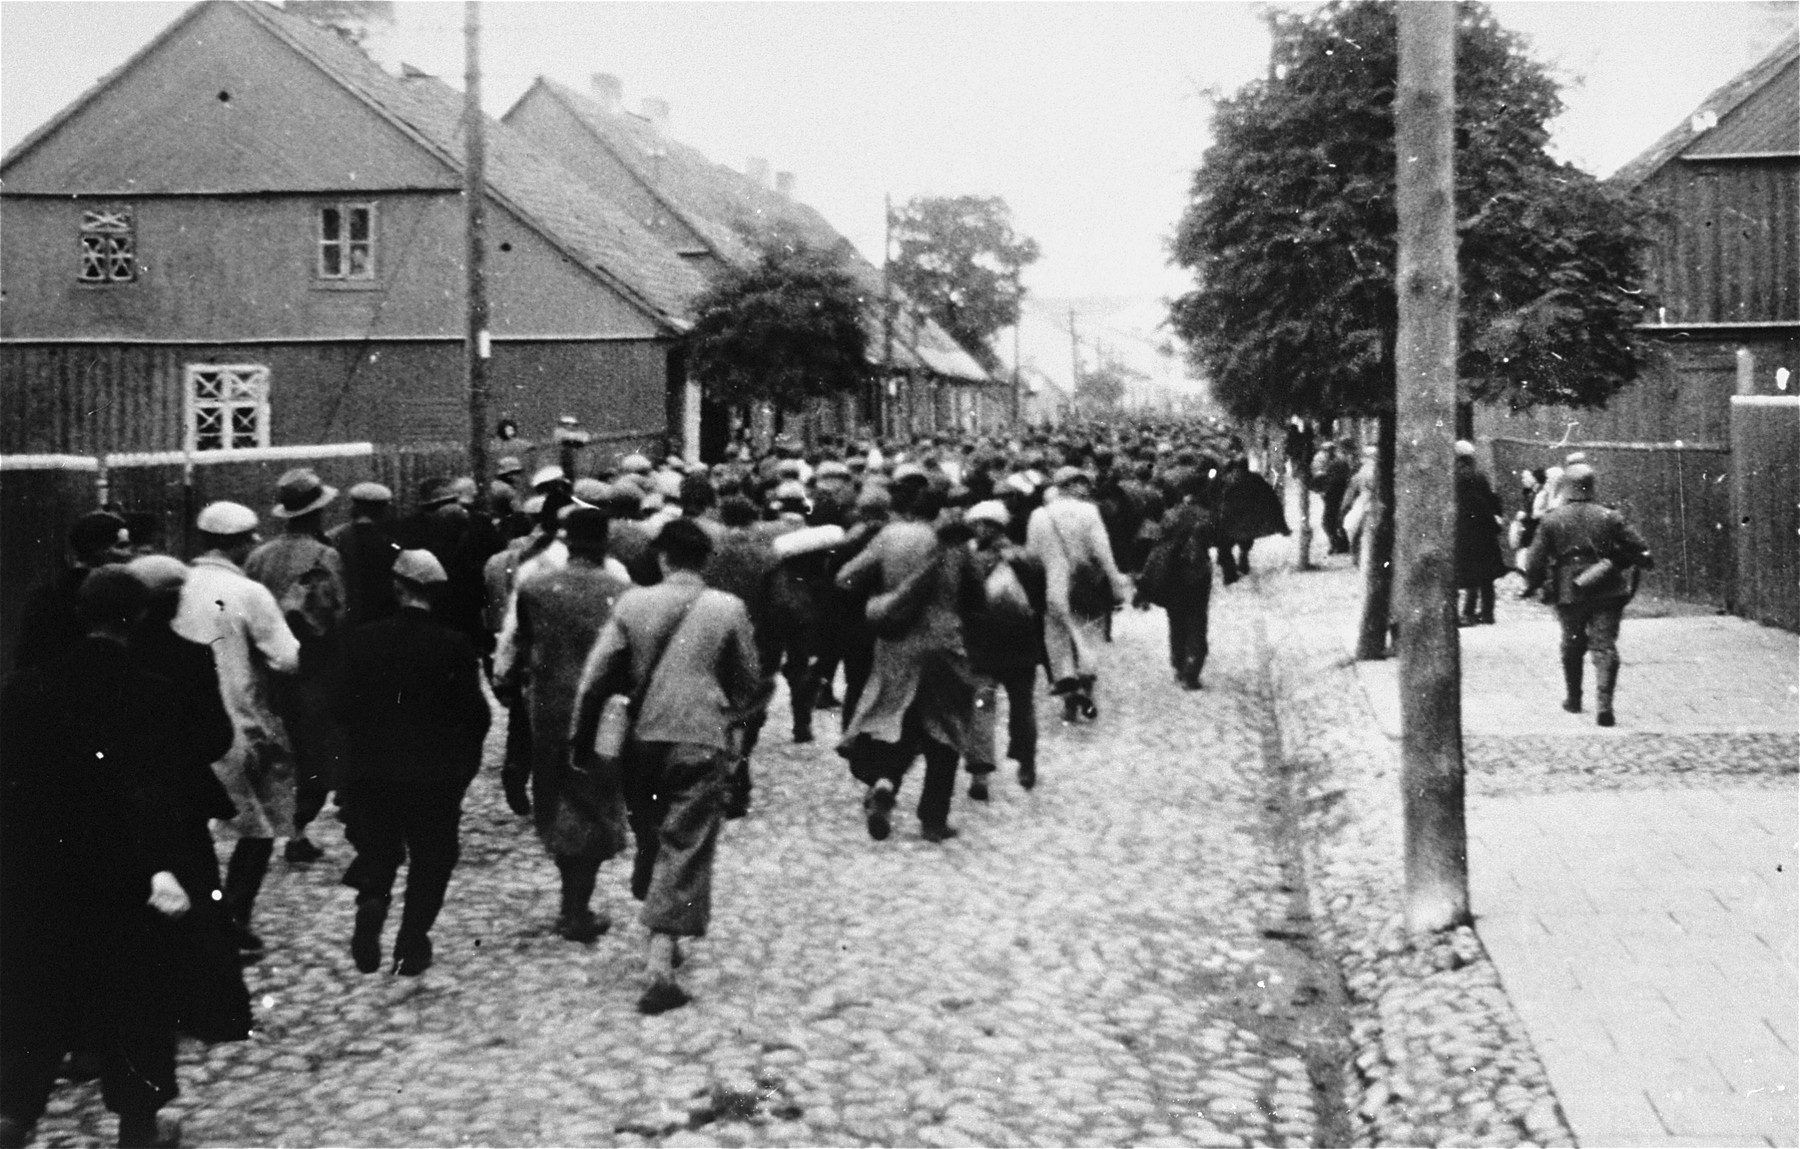 Jewish men are marched through town during a deportation action in Plonsk.